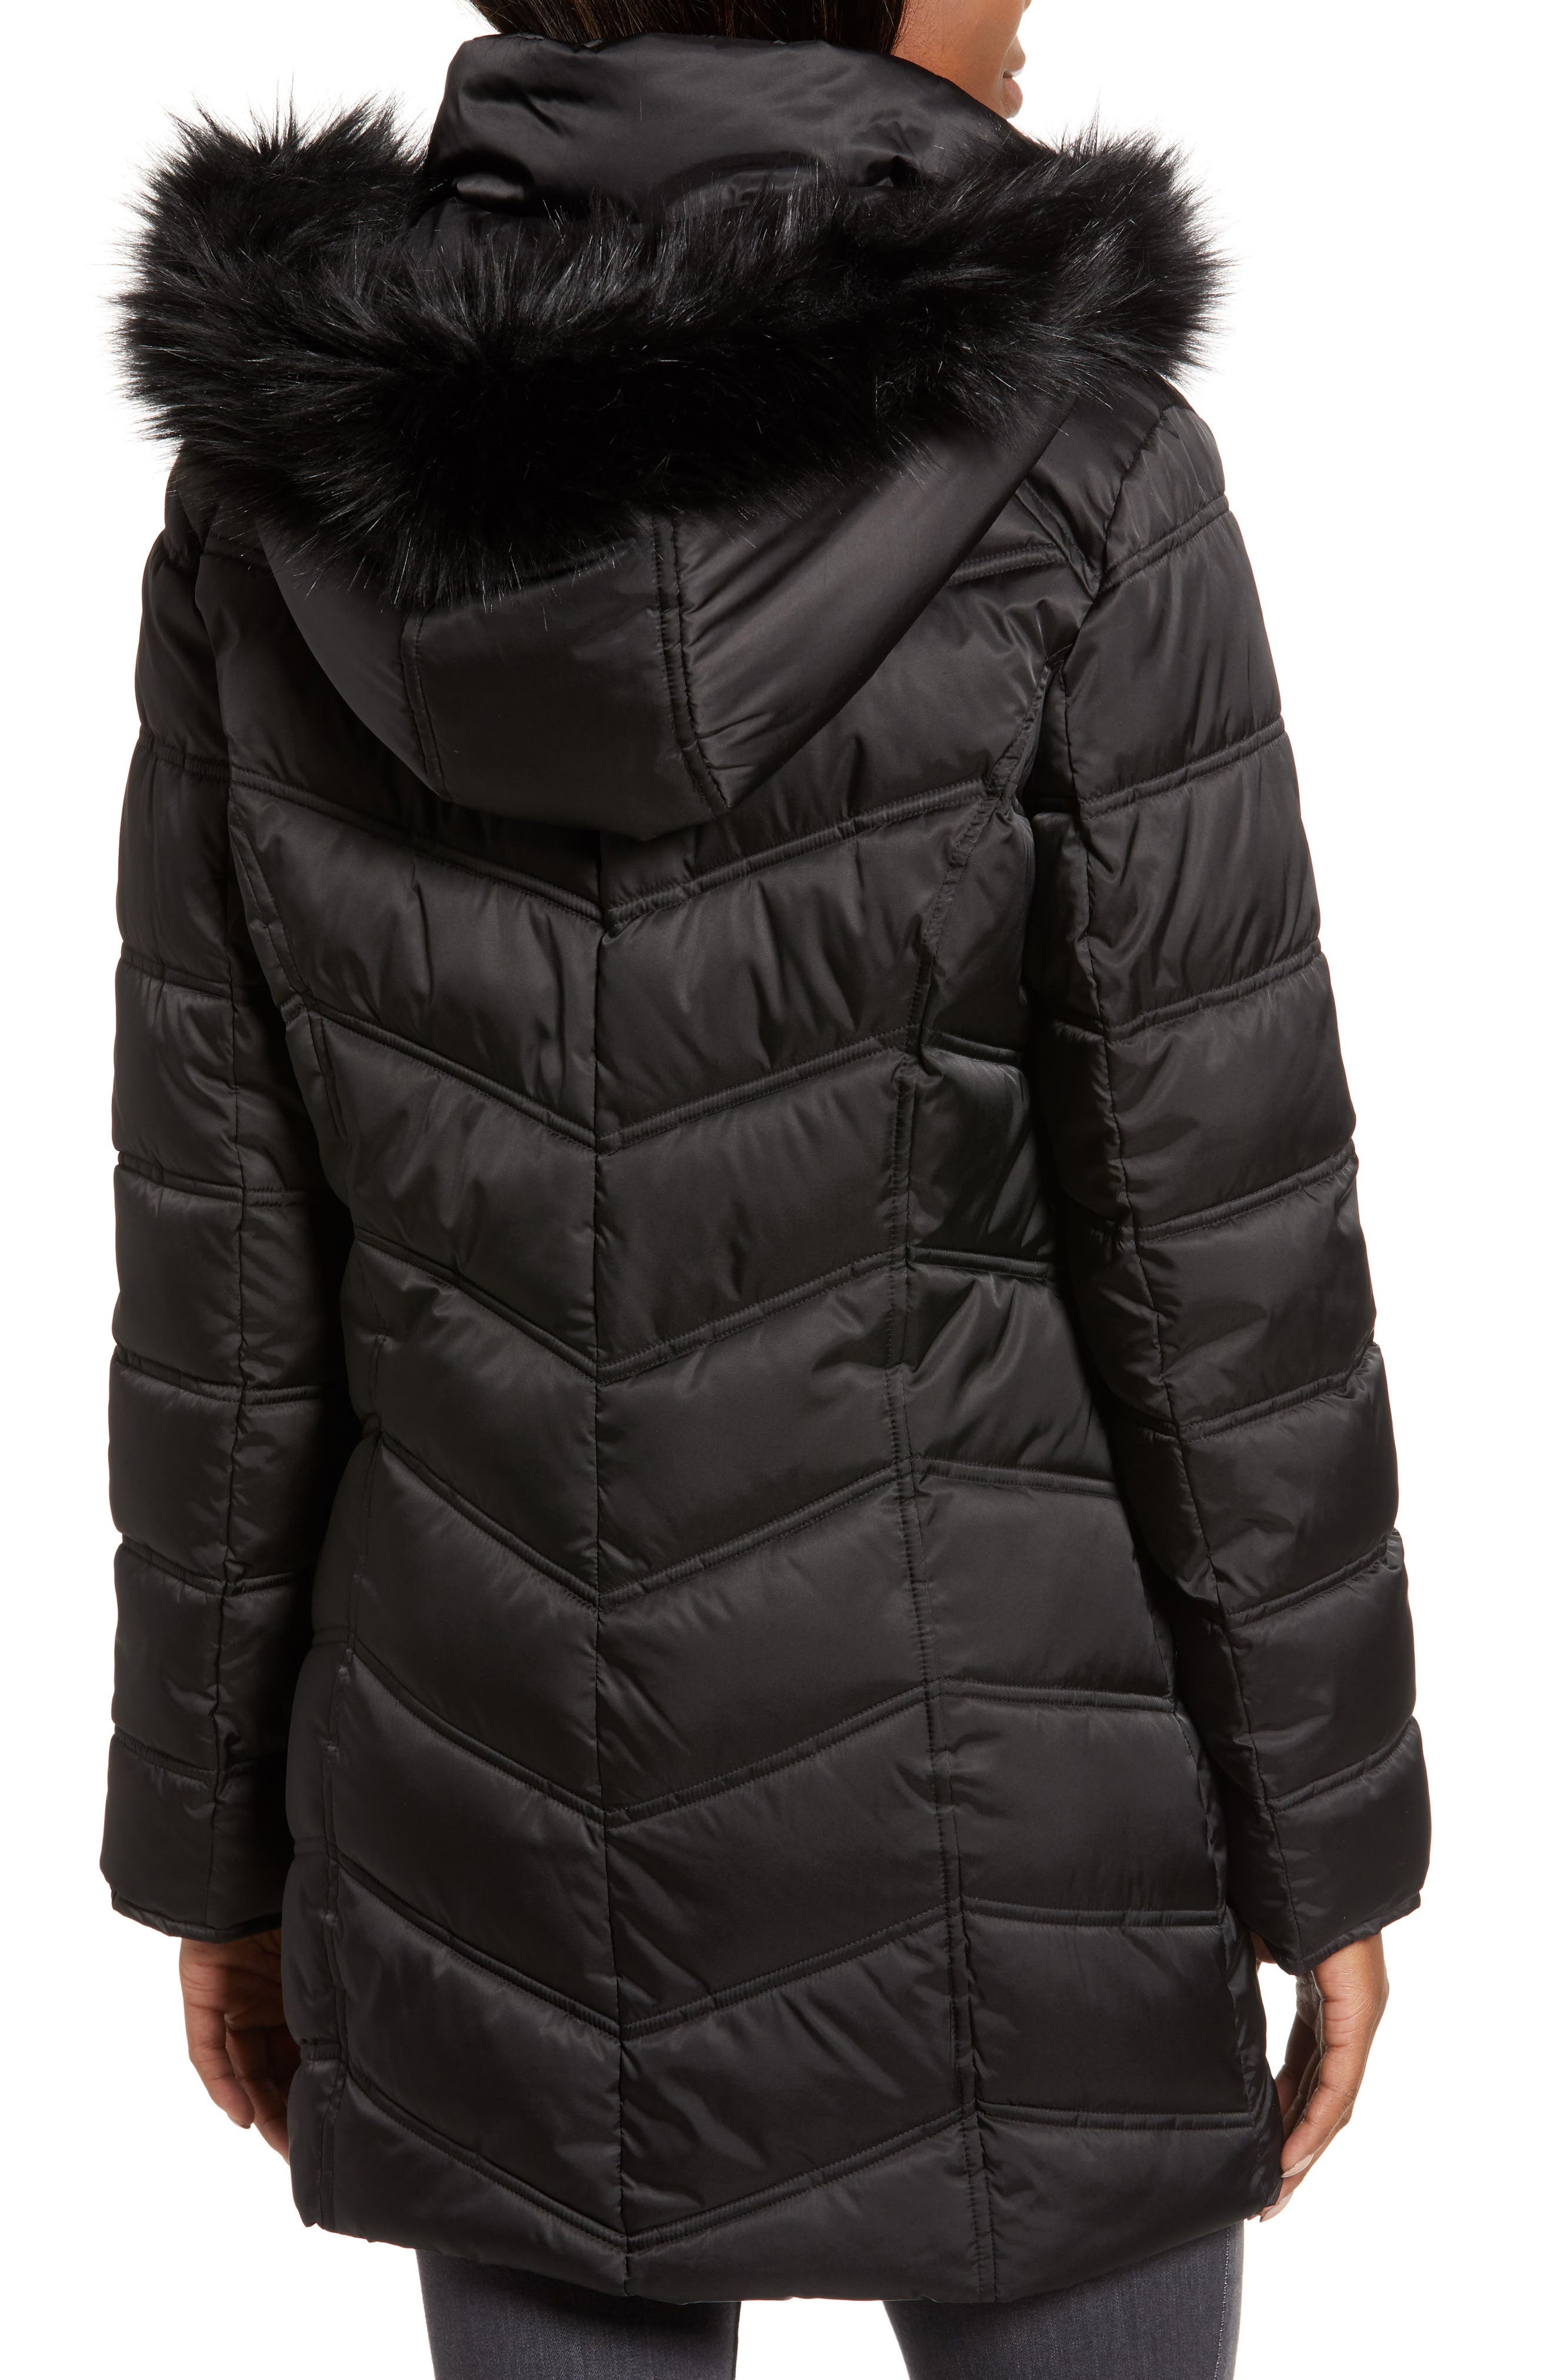 Faux Fur Trim Puffer Jacket,                             Alternate thumbnail 2, color,                             BLACK